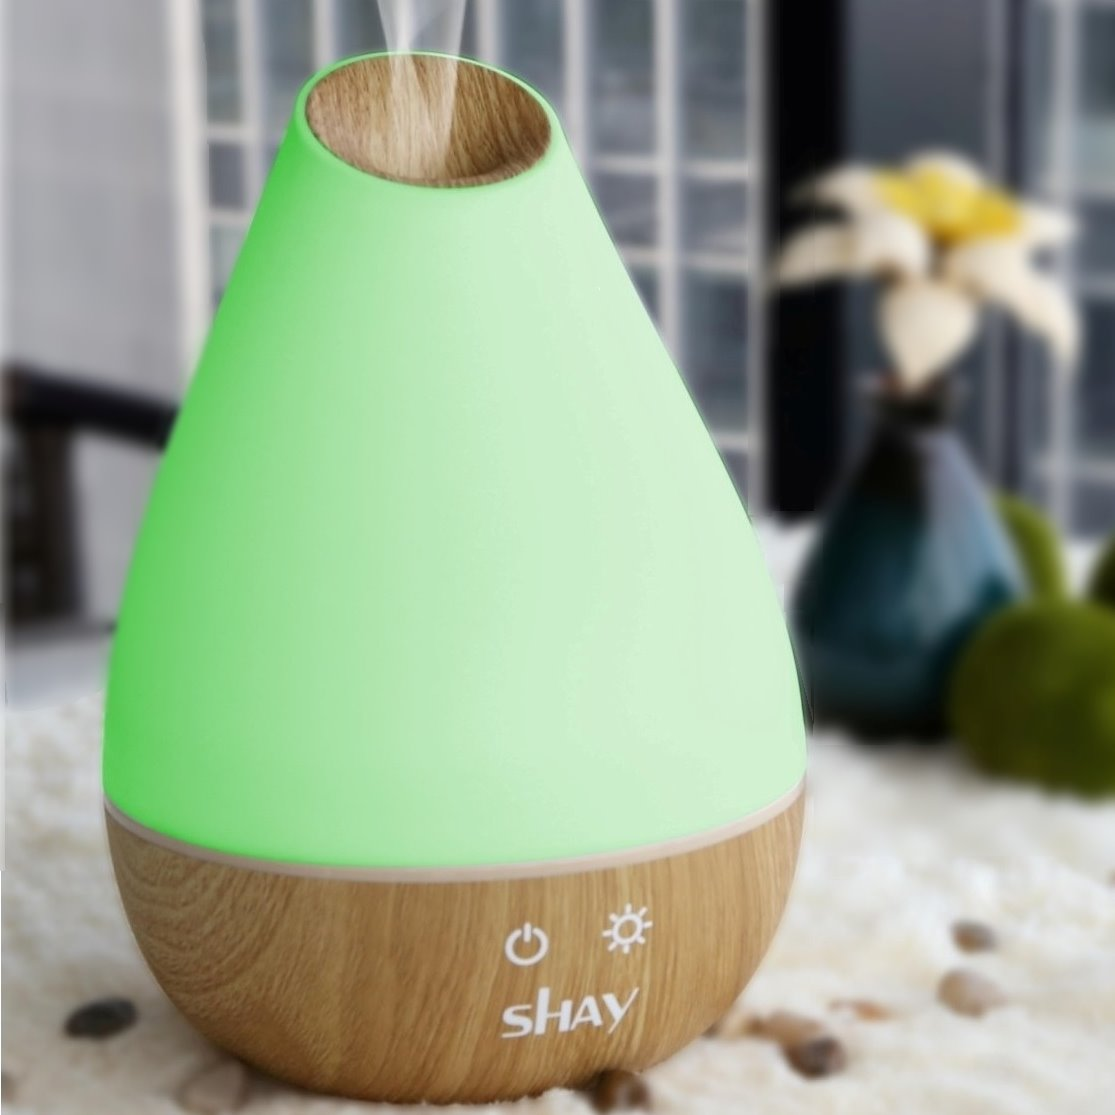 Shay Ultrasonic Aroma Diffuser and H